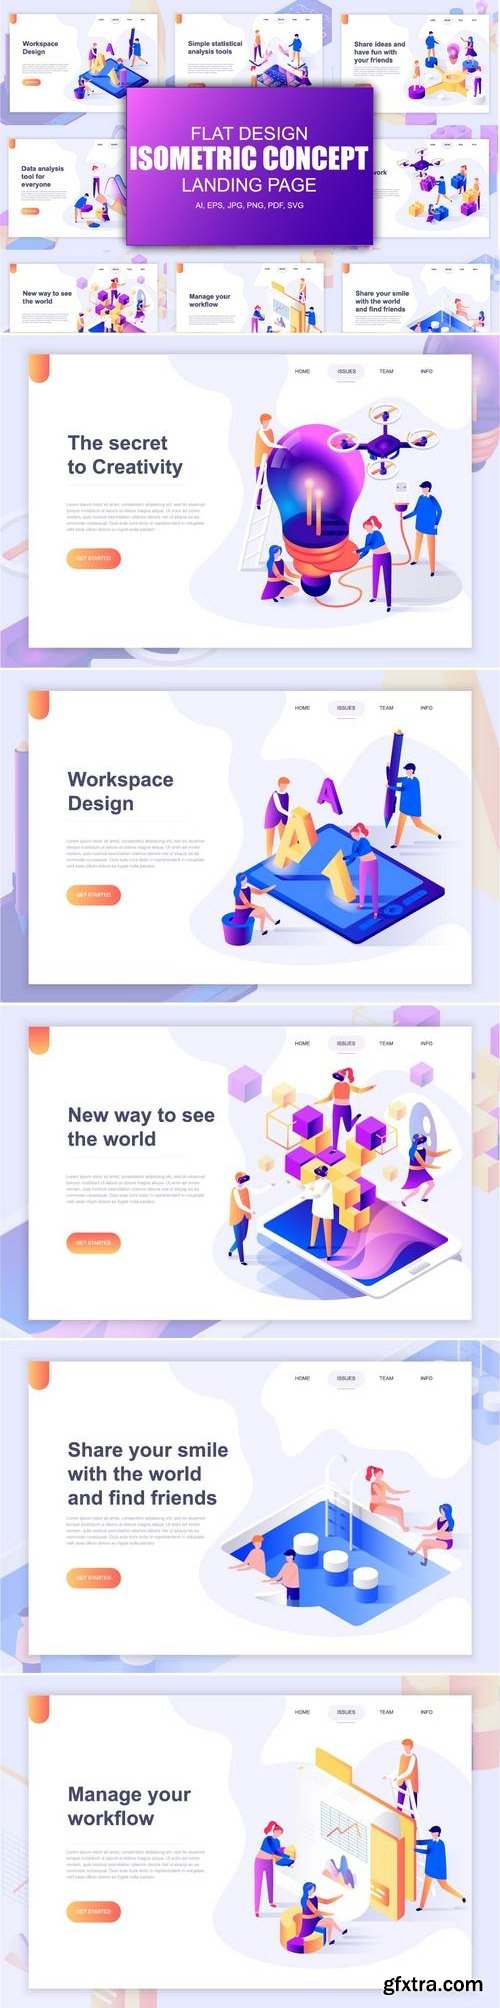 Landing Page Templates Isometric Concept